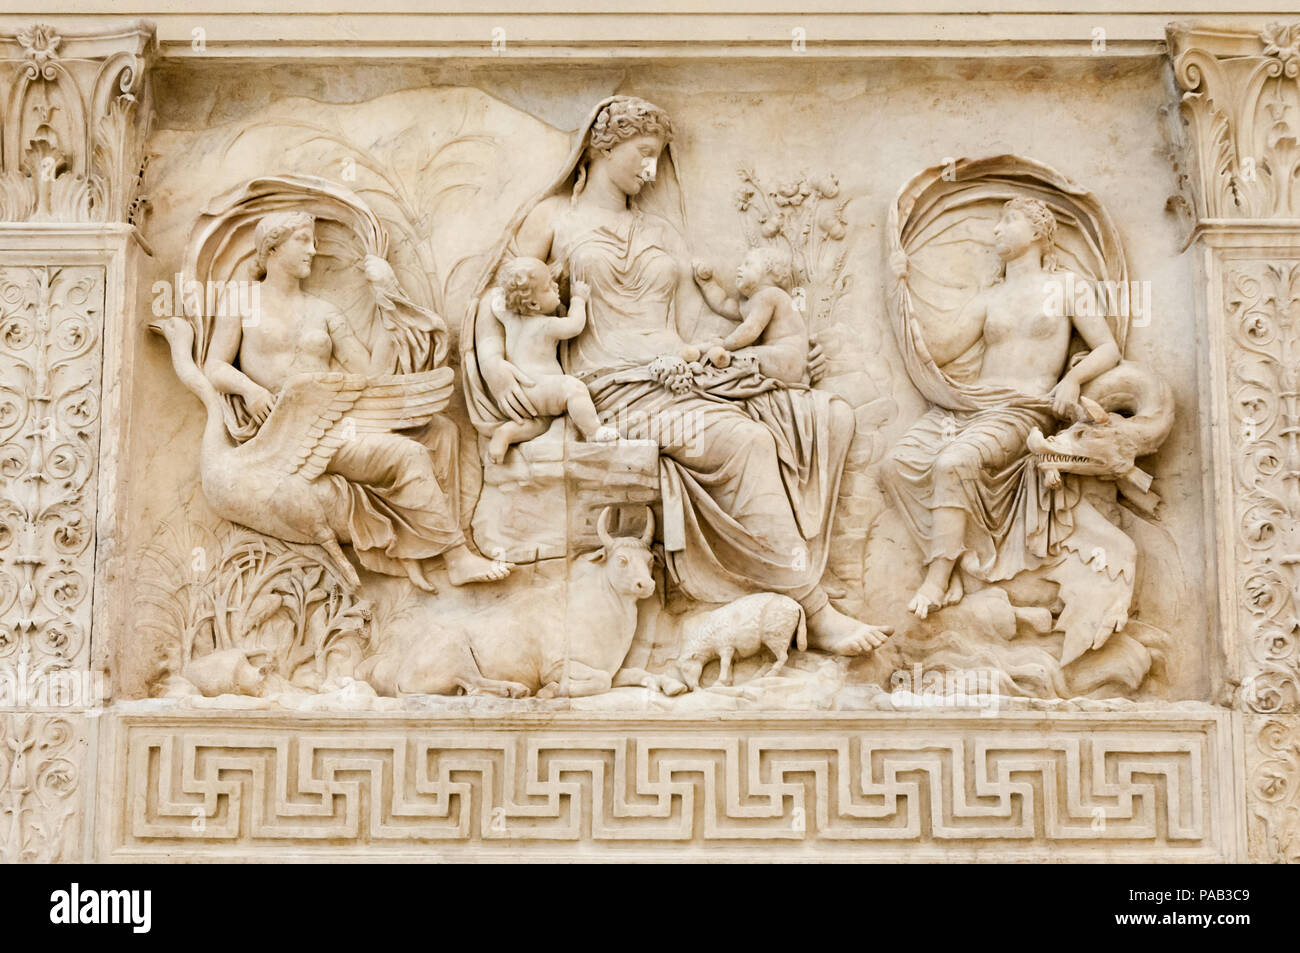 The 'Tellus' panel from the Ara Pacis Augustae (Altar of Augustan Peace) in Rome dedicated to Pax, the Roman goddess. of peace - Stock Image